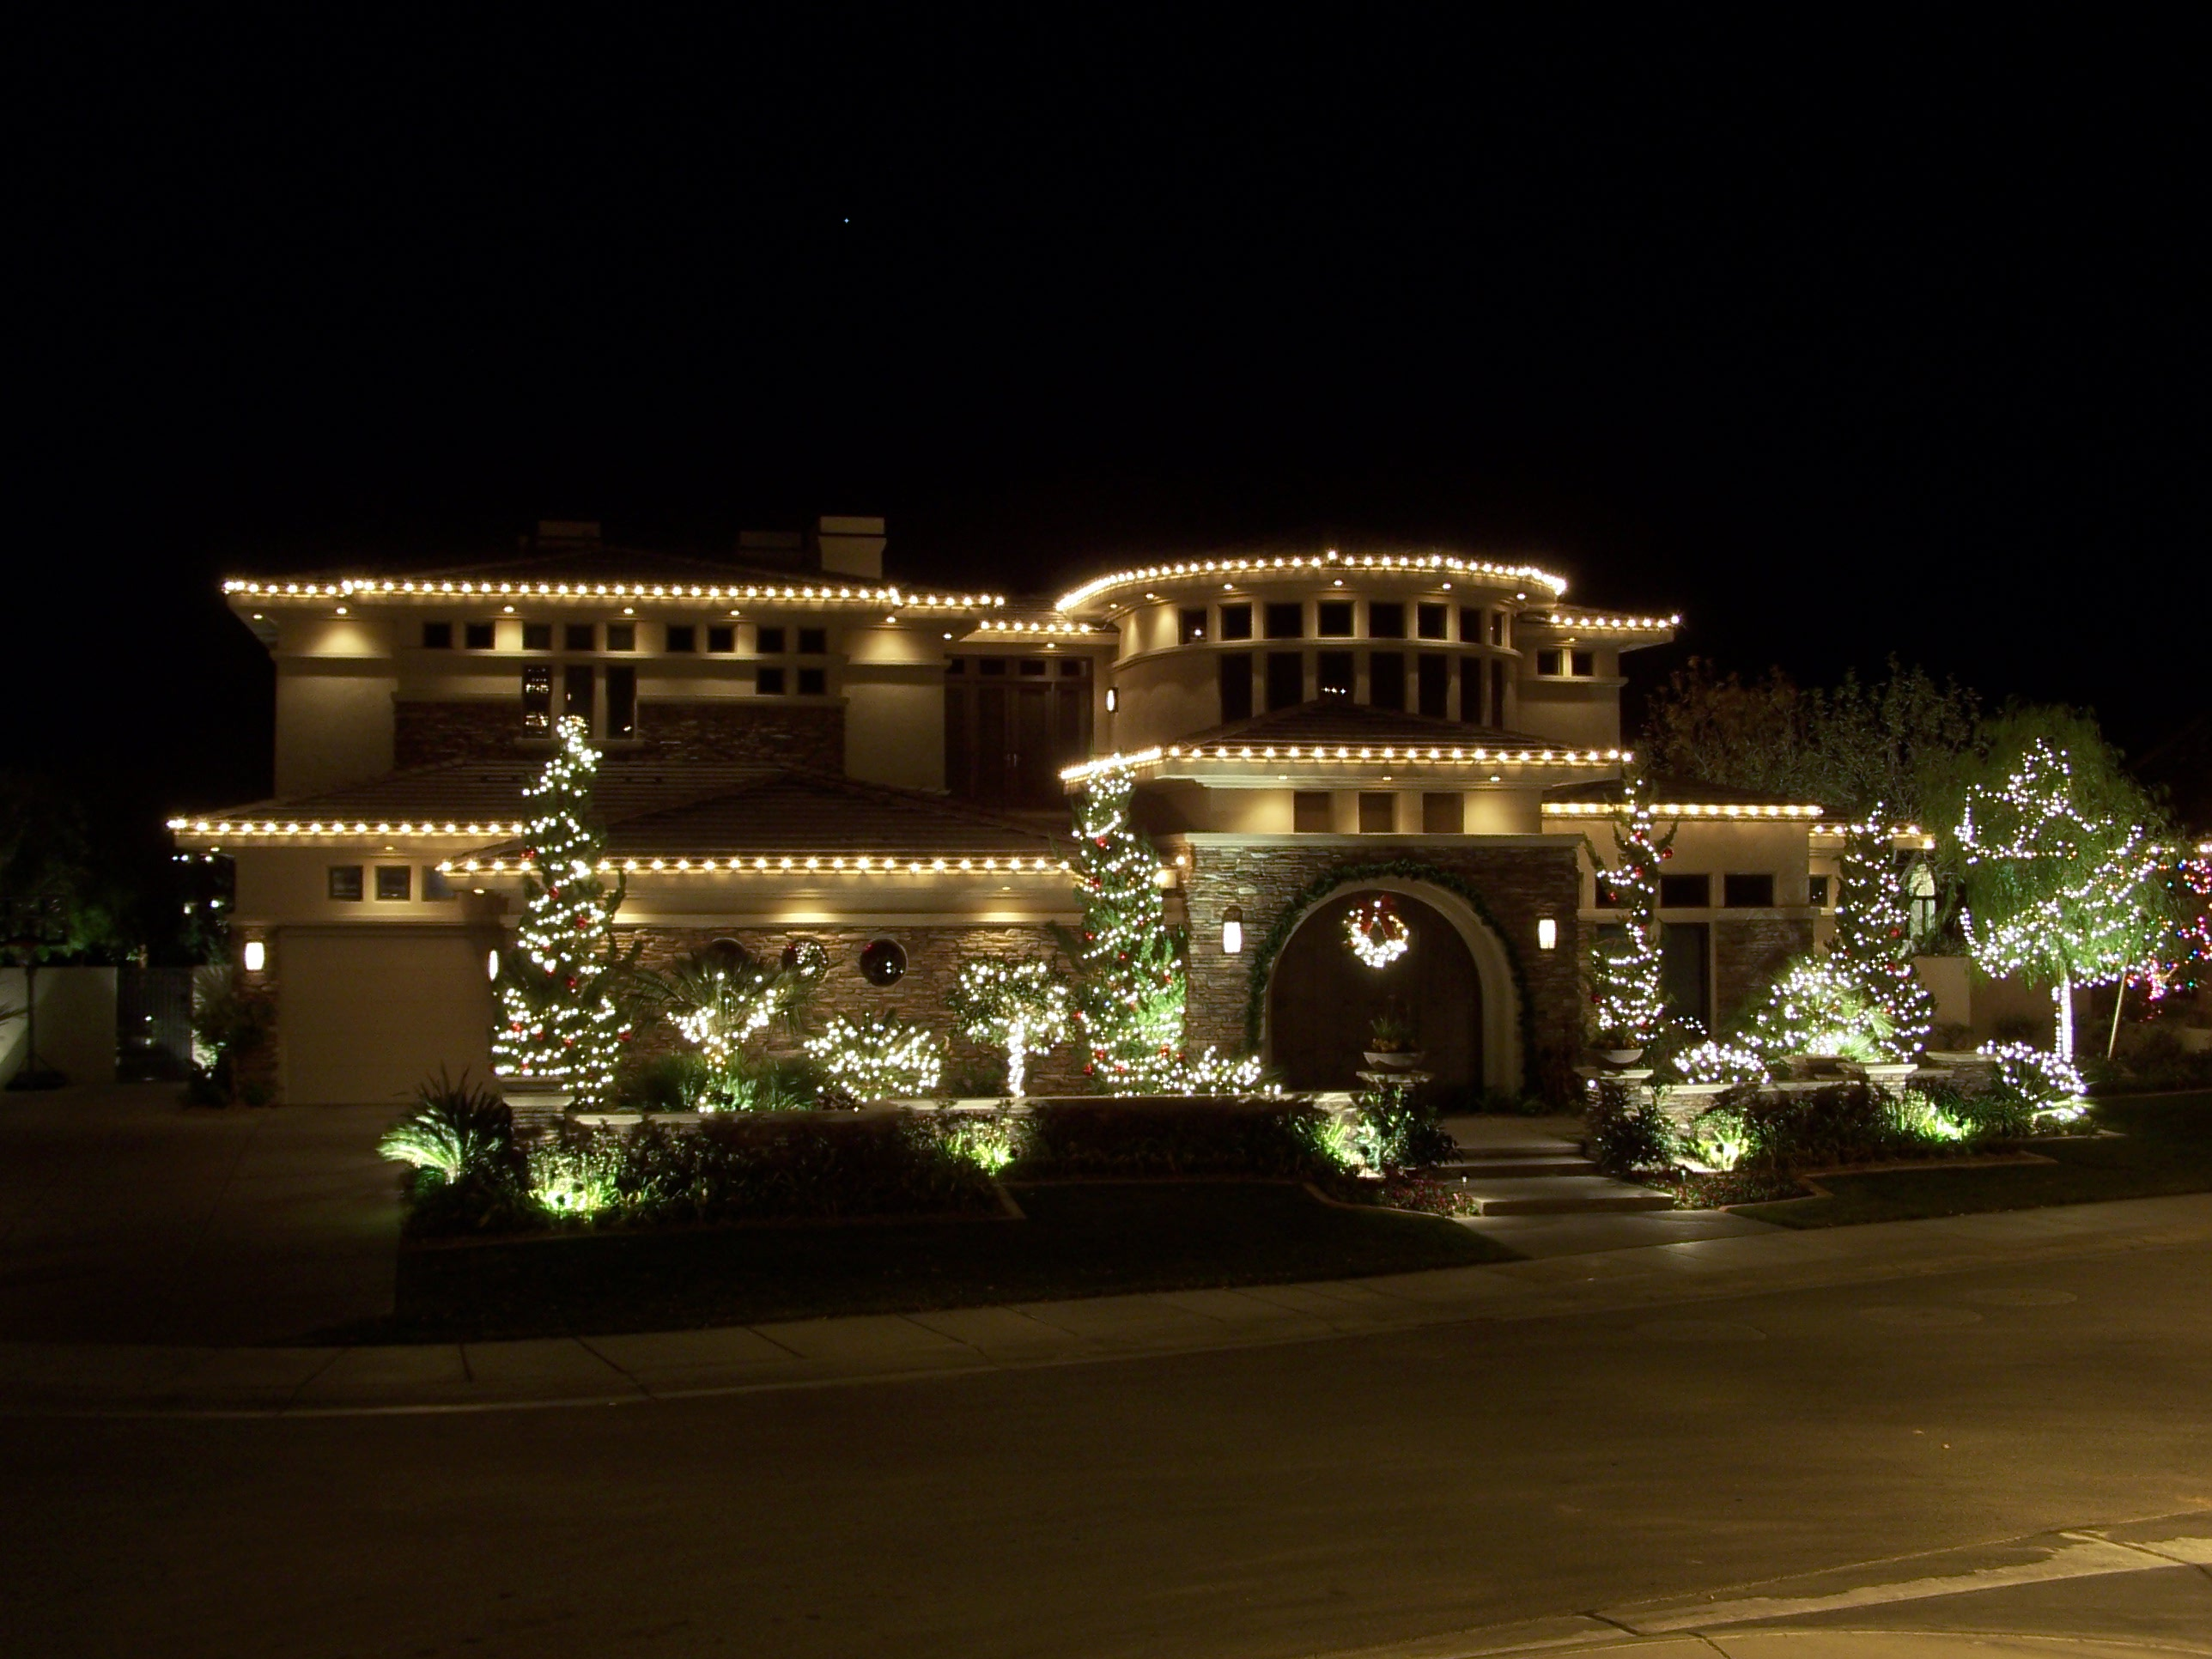 holidayilluminationcom christmas and holiday light installation service - Outdoor Christmas Light Decorators